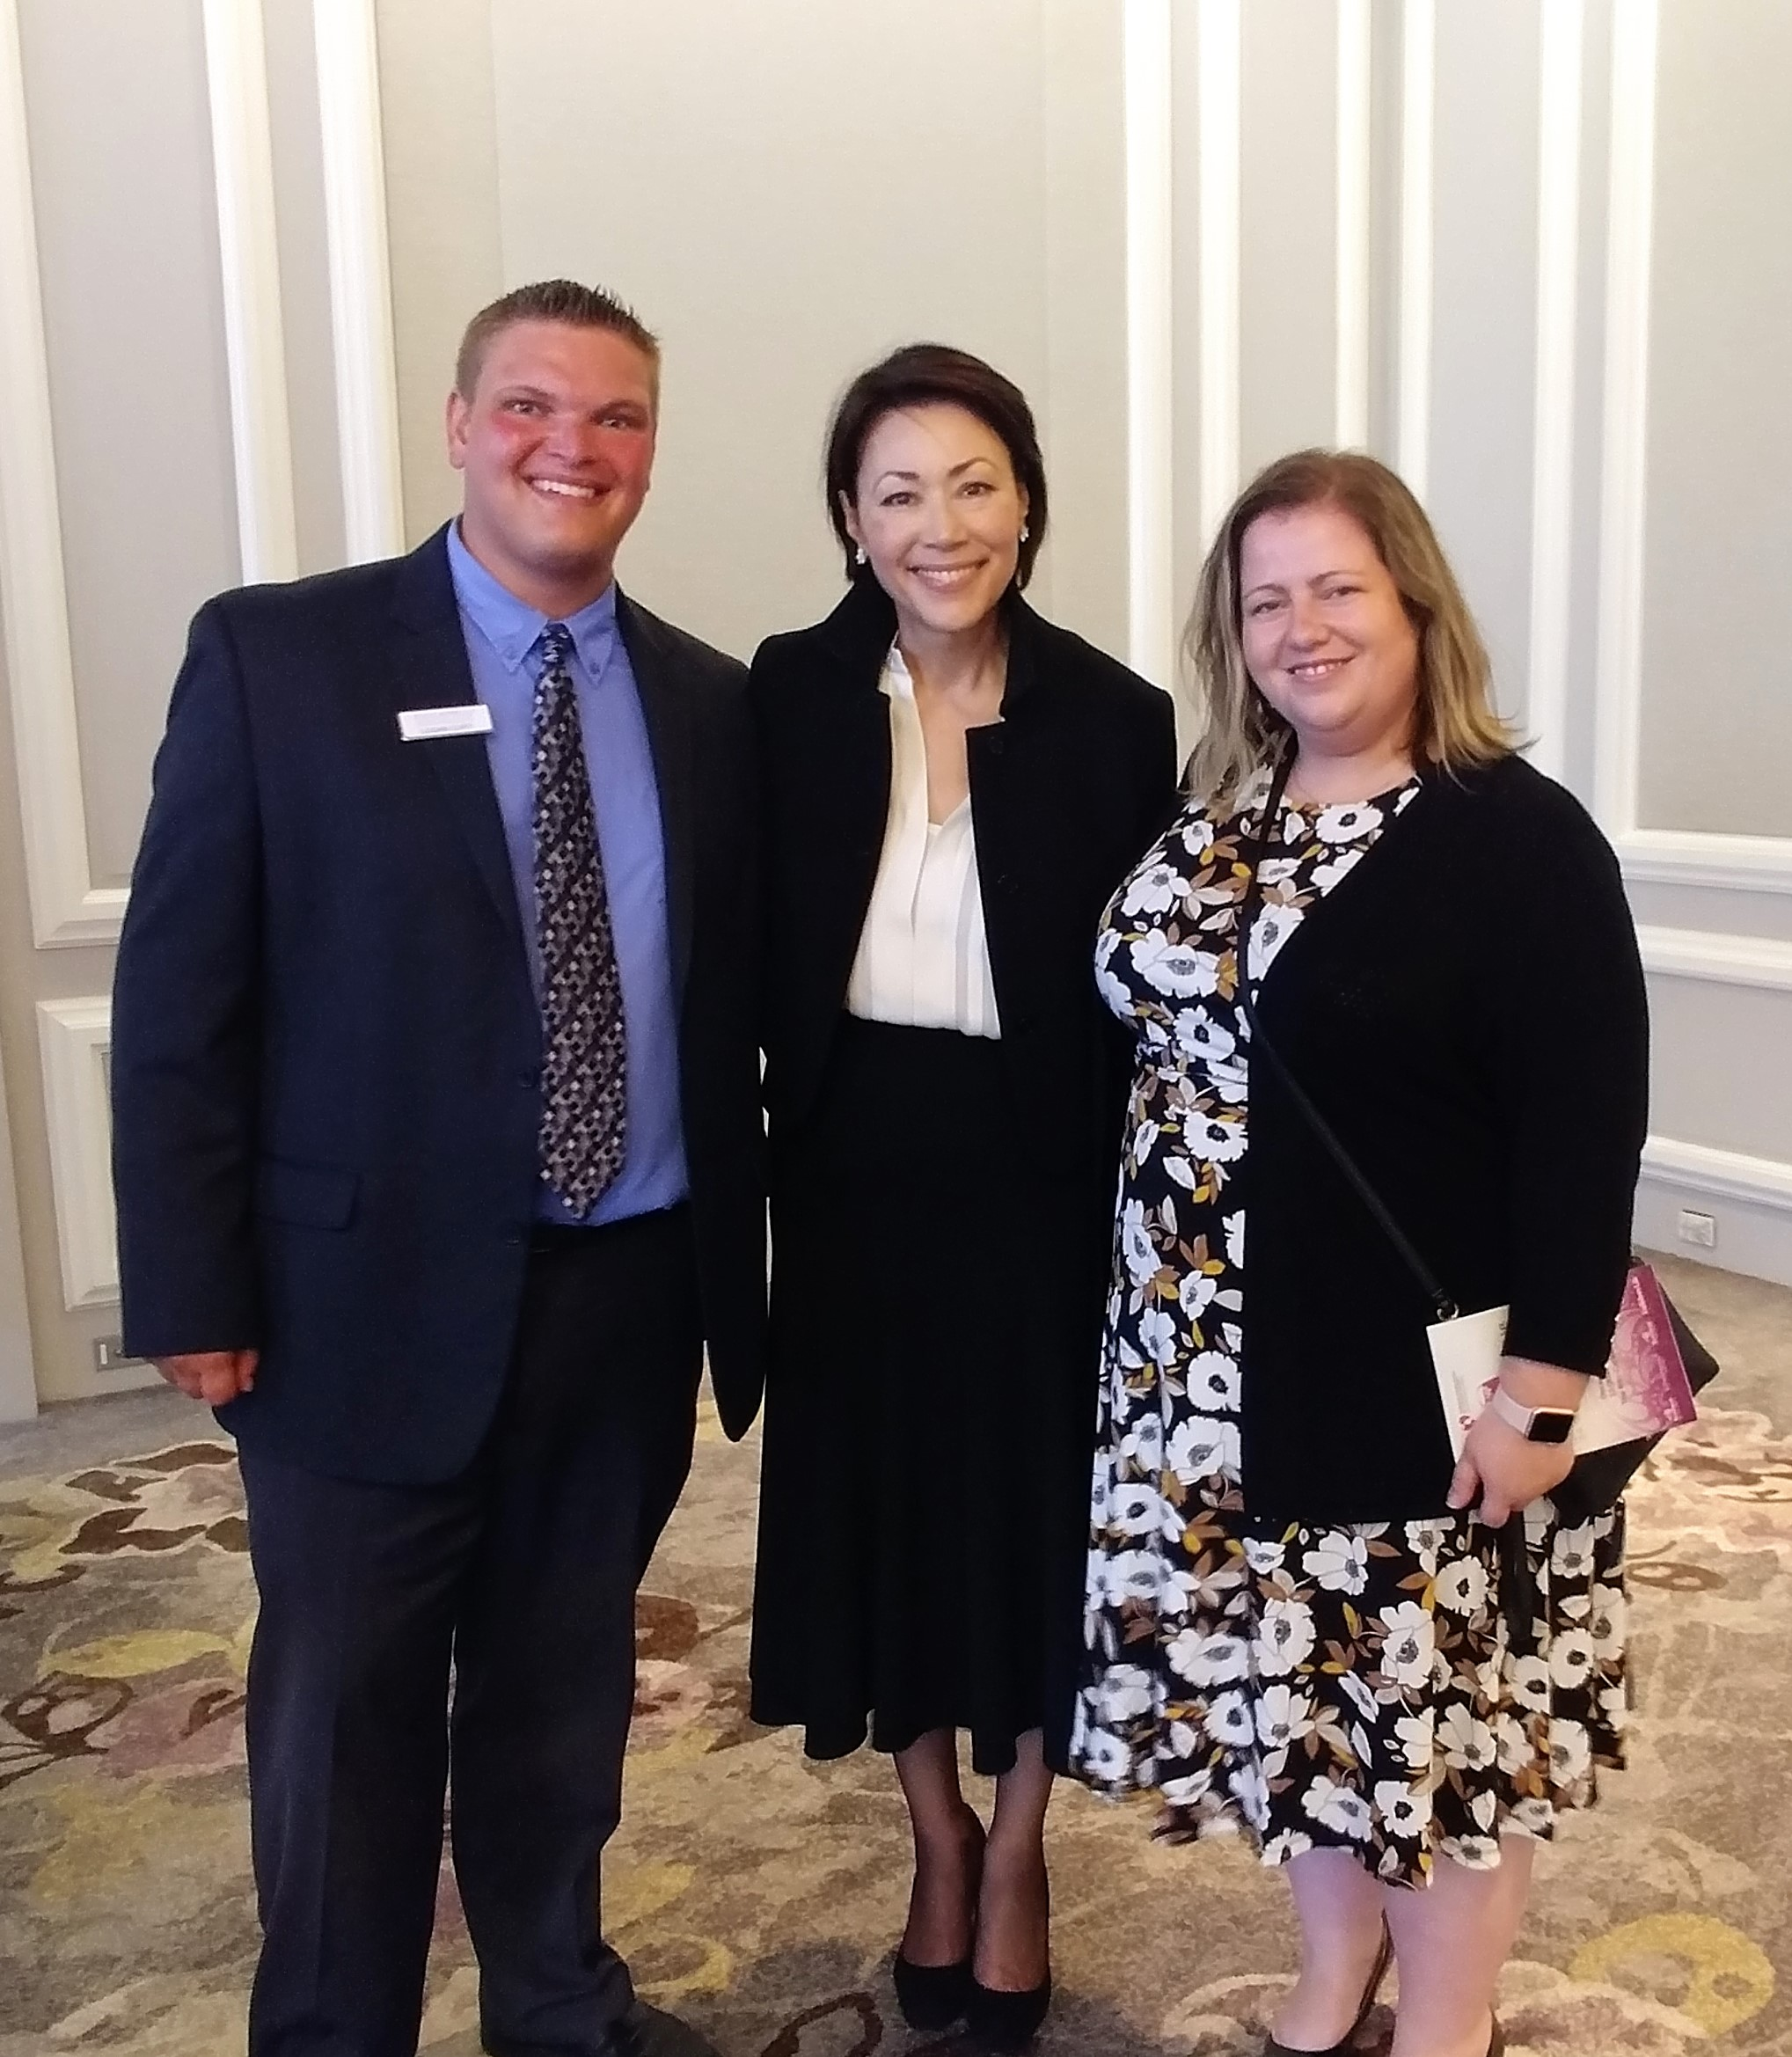 Ann Curry Reception #4